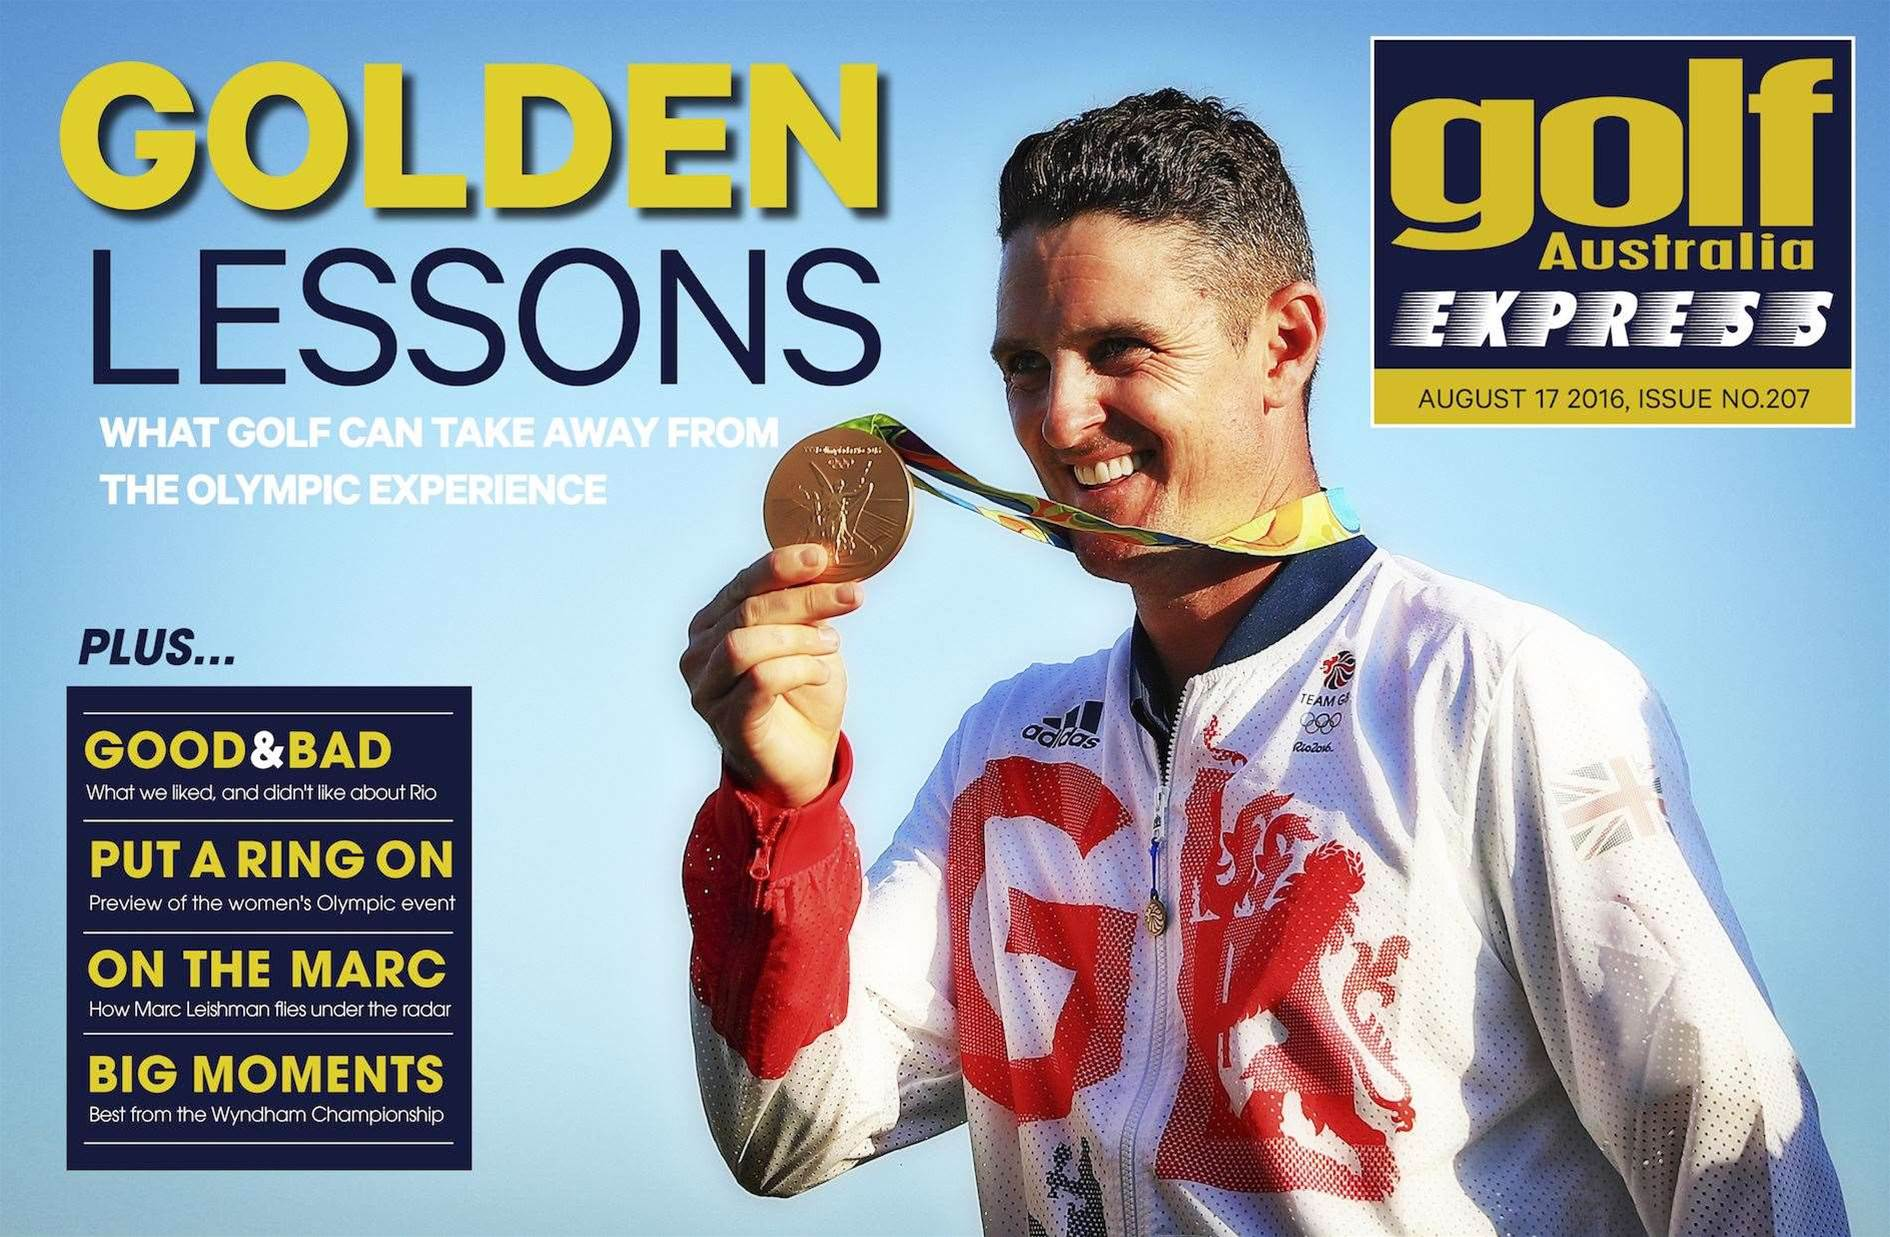 GA Express Issue 207: Golden Lessons